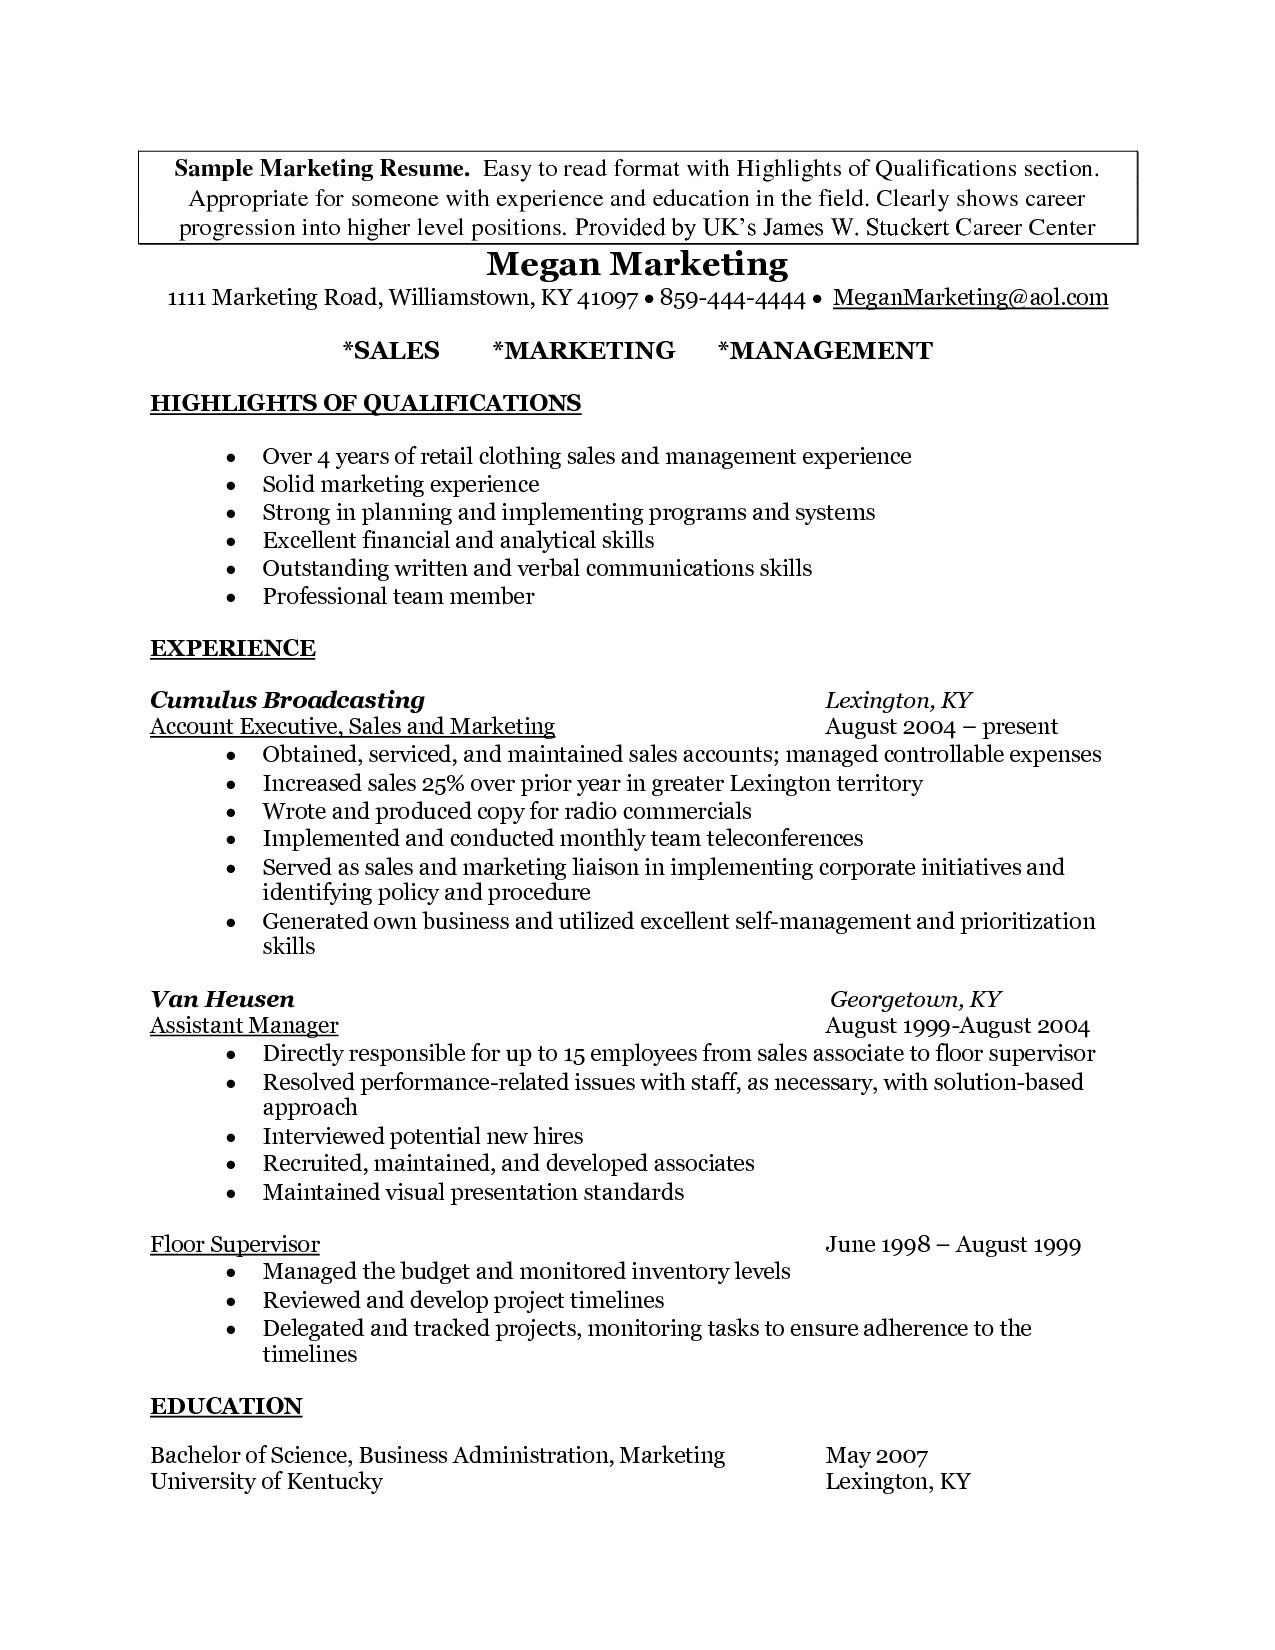 Marketing Skills Resume - Marketing Manager Resume Fresh New Programmer Resume Lovely Resume